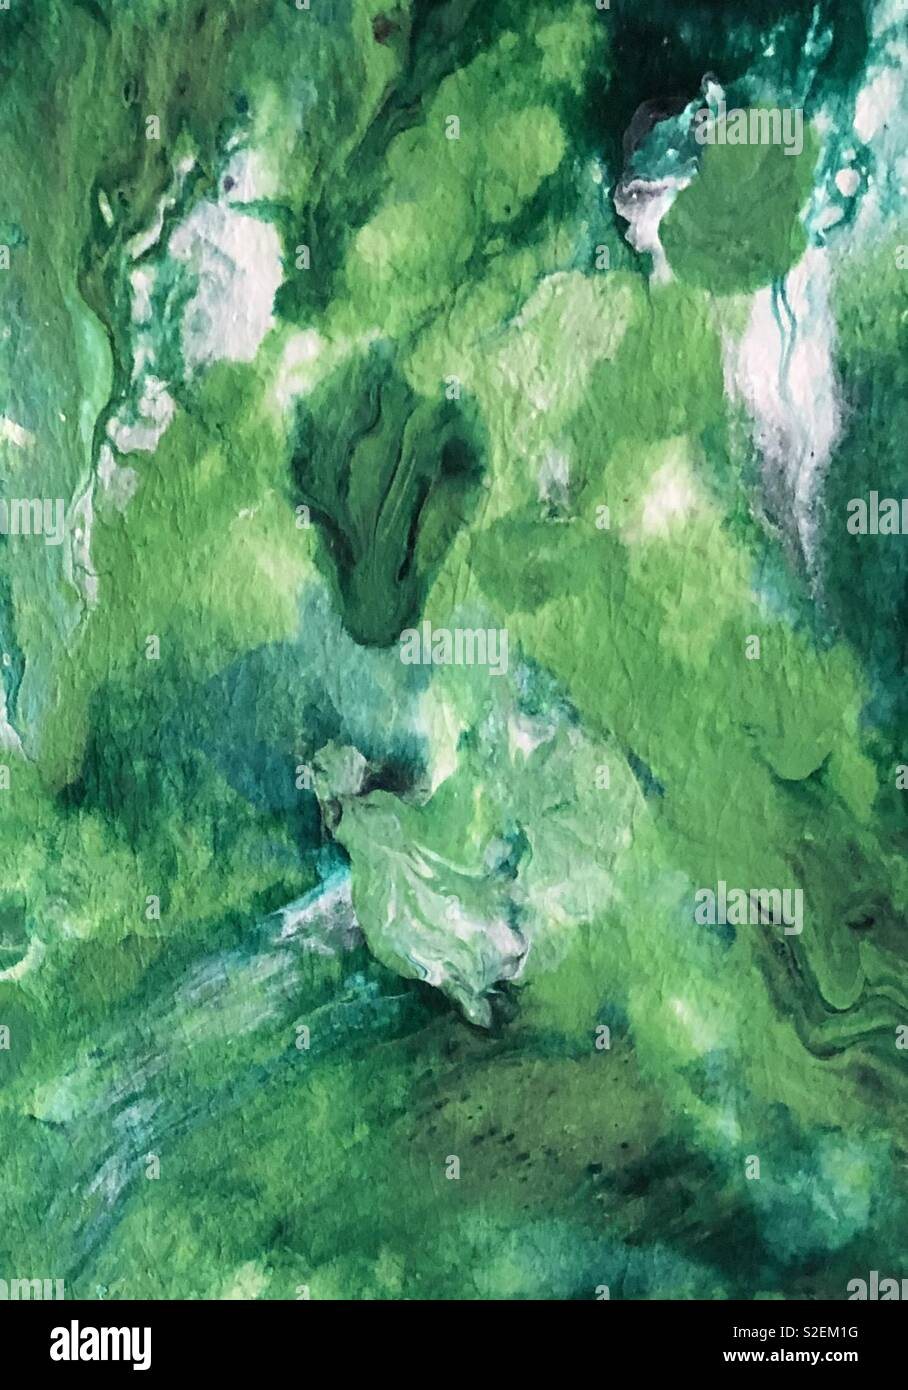 Vibrant greens abstract painting for copy space and backgrounds - Stock Image